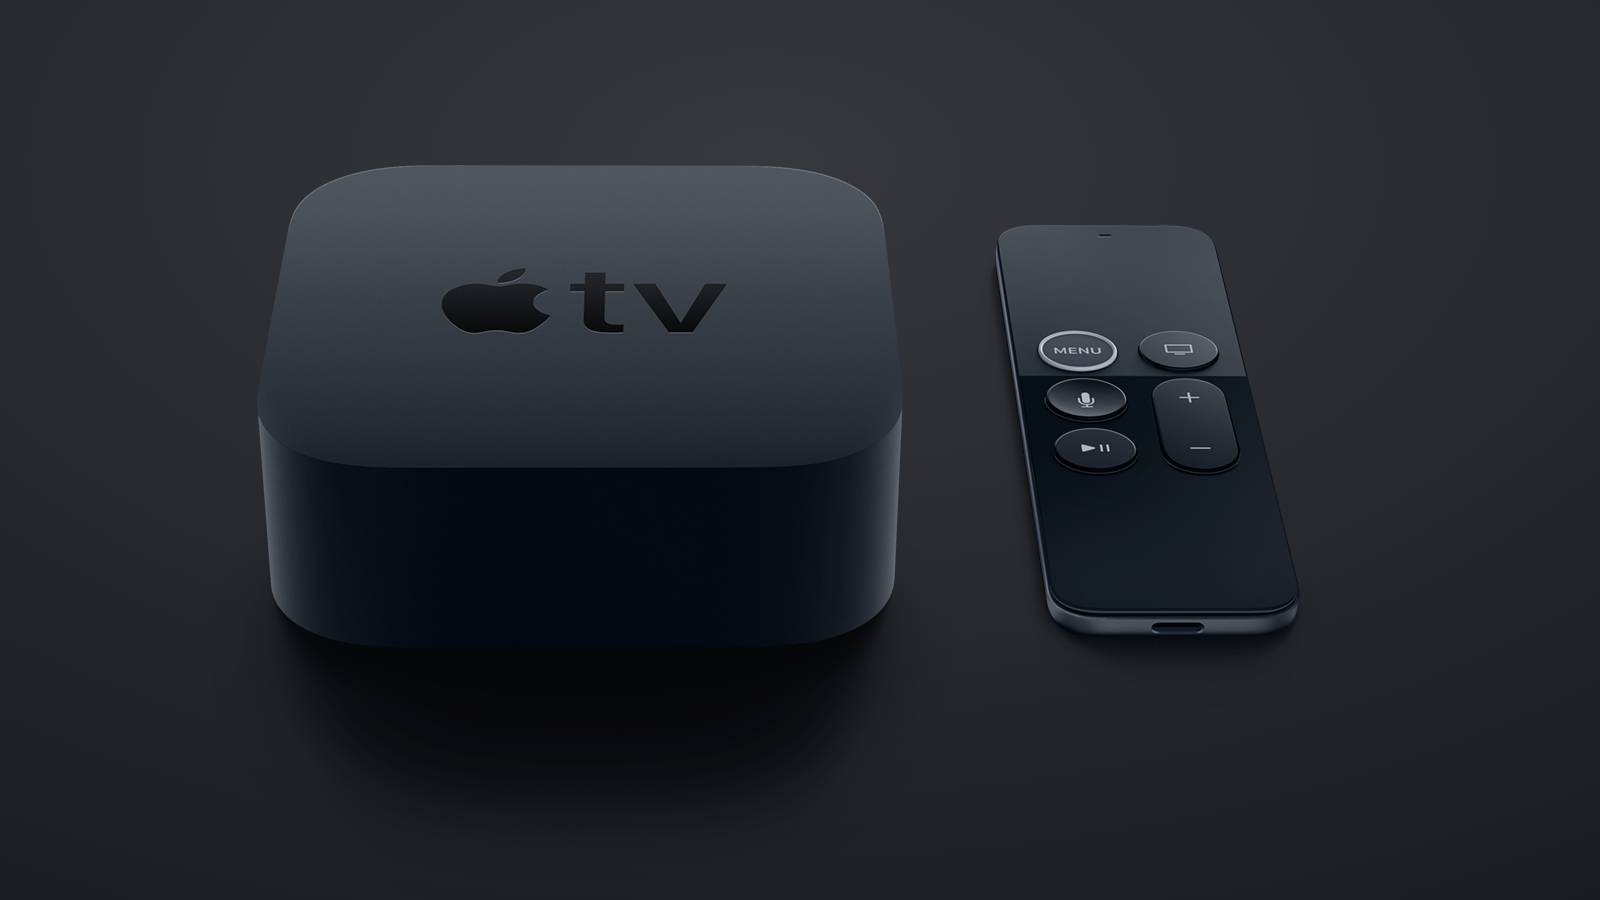 https://www.macfreak.nl/modules/news/images/zArt.AppleTV-SiriRemote-2.jpg